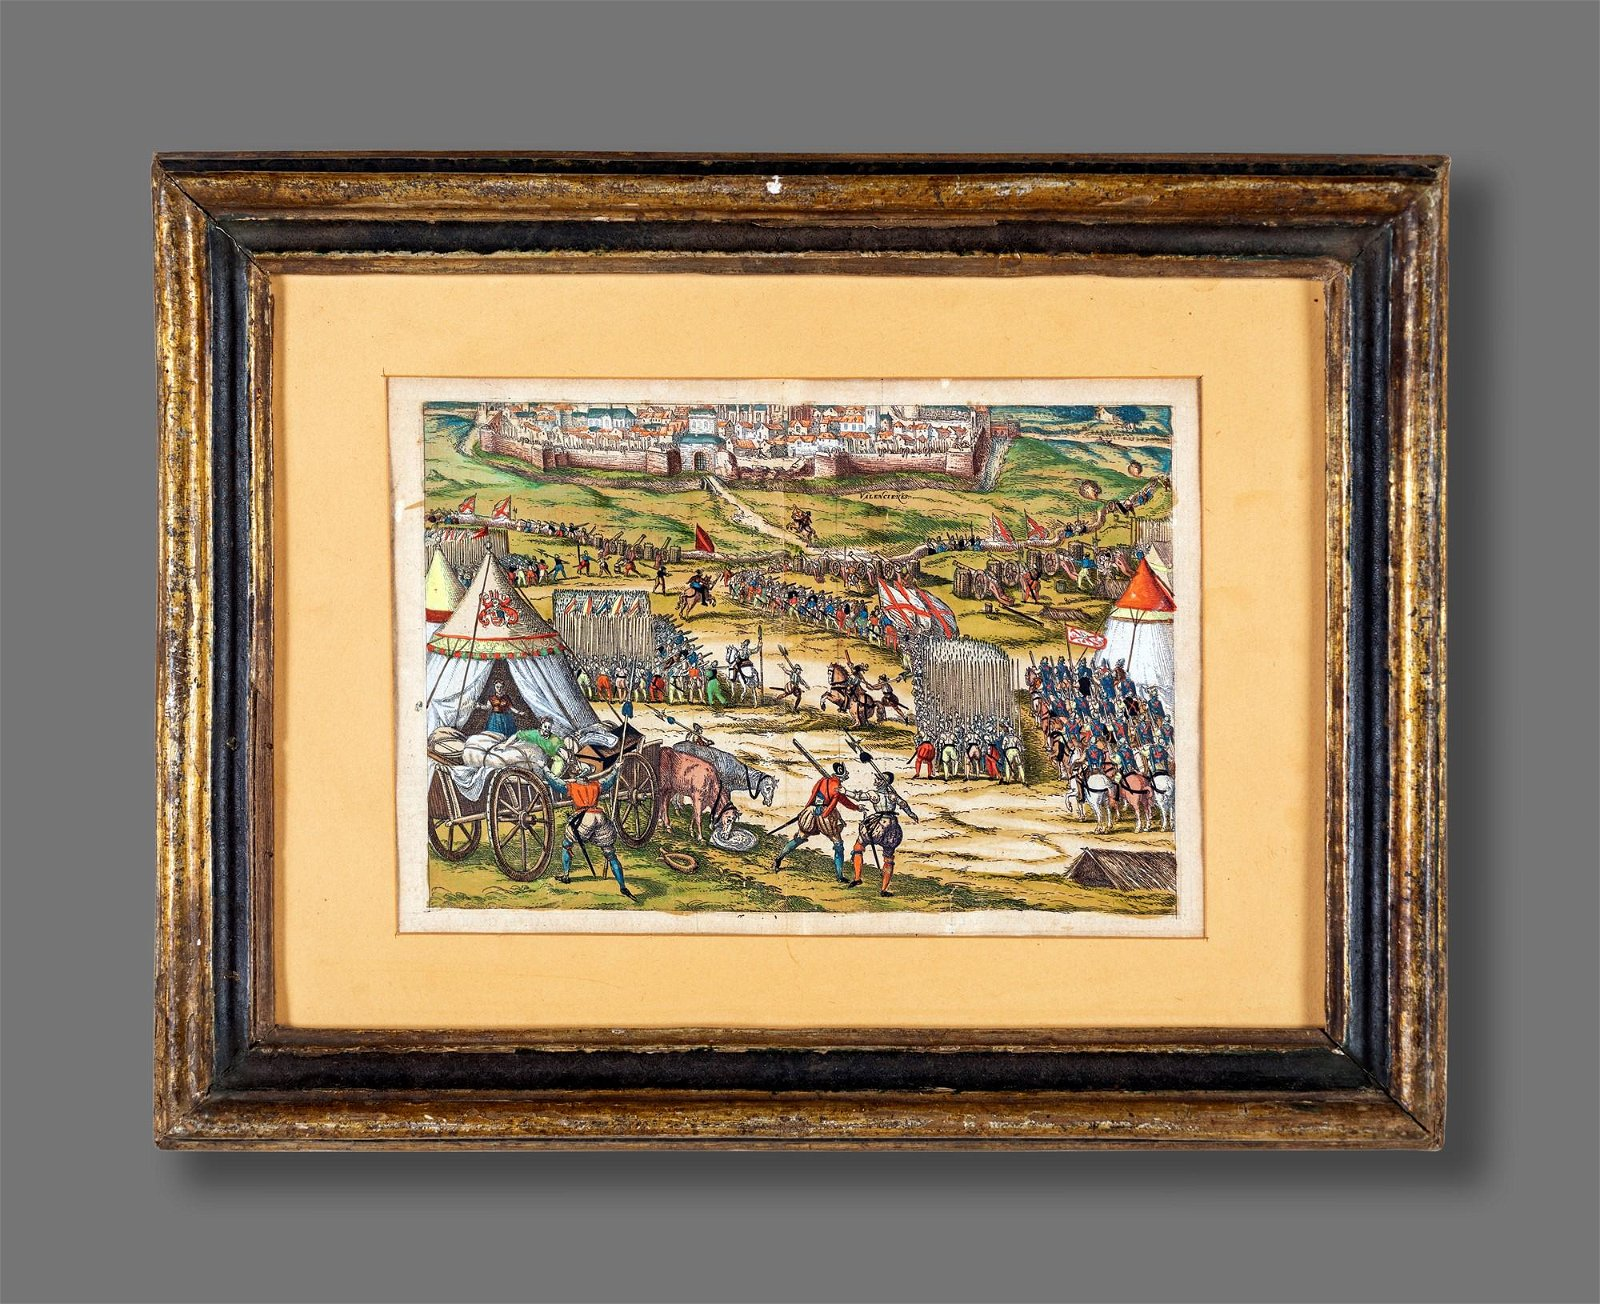 Pair of watercolor prints depicting a soldiers camp and